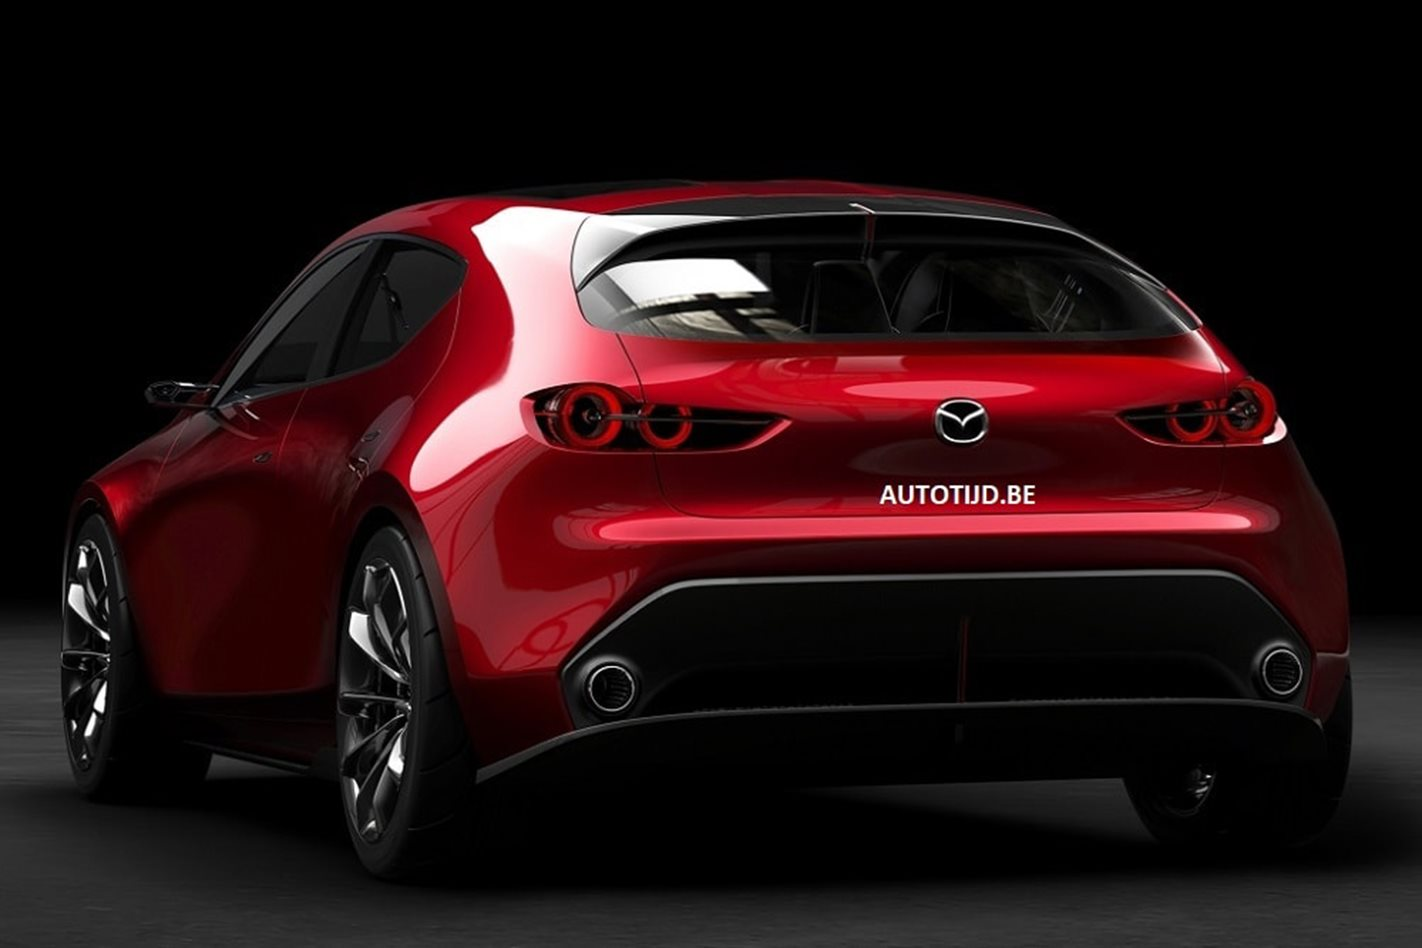 2017 tokyo motor show 2018 mazda 3 images leaked ahead of